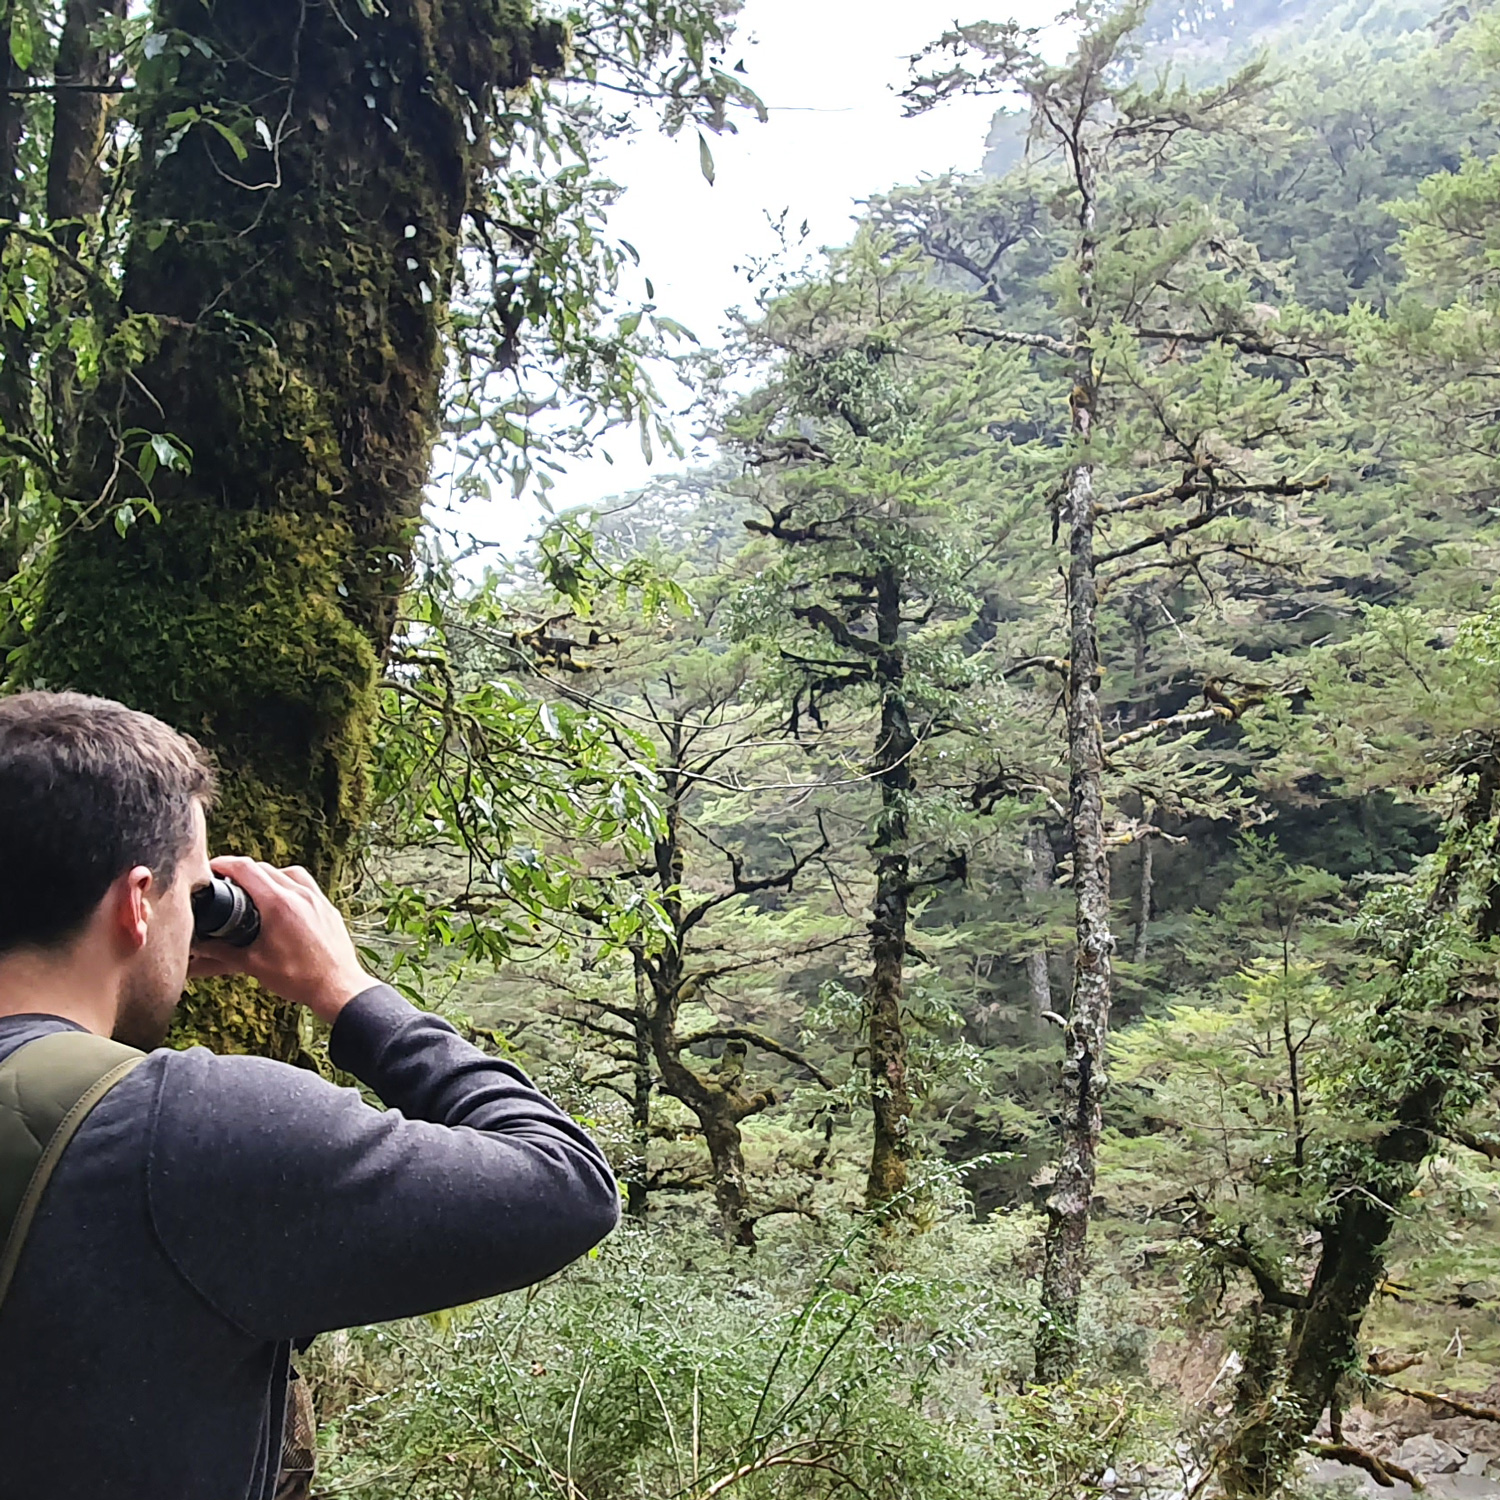 Observation in forest with Extra-low dispersion Binoculars